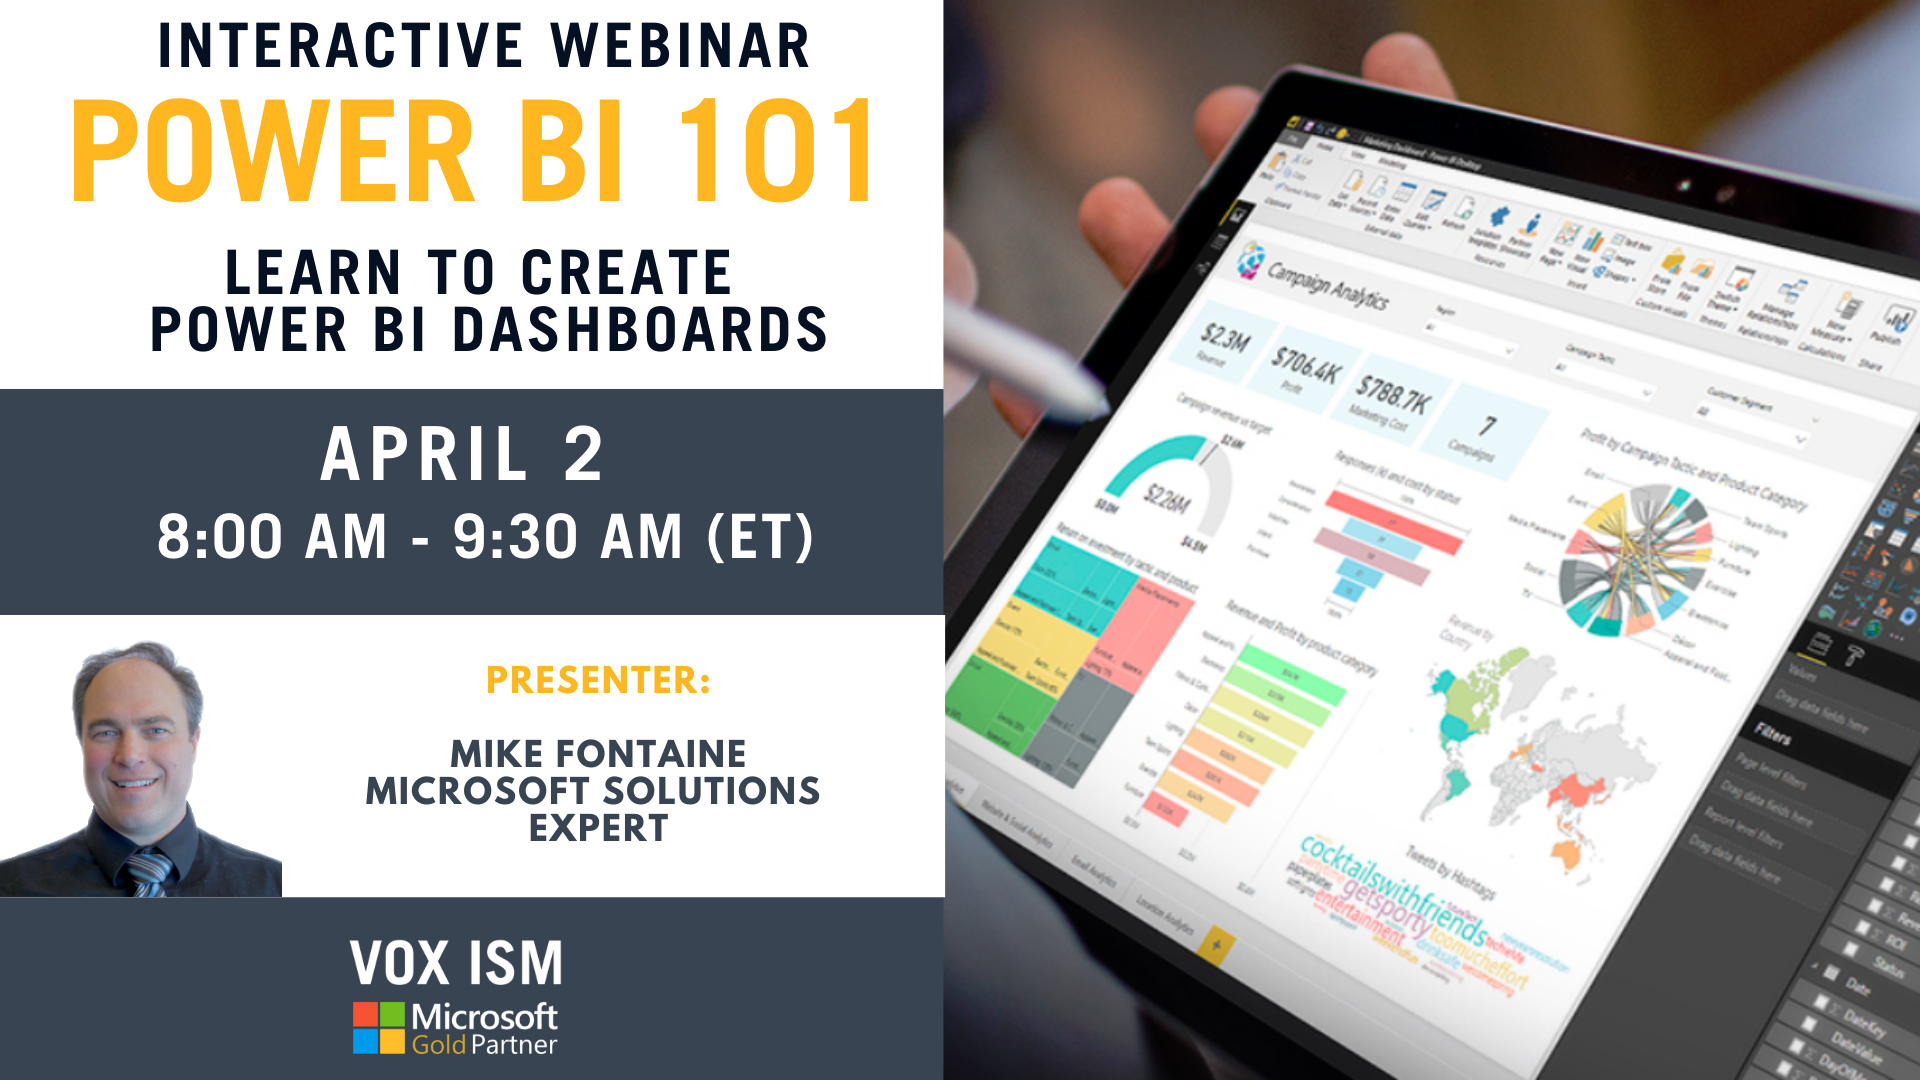 Power BI 101 - Learn to create Power BI Dashboard - April 2 - Webinar - 8 AM